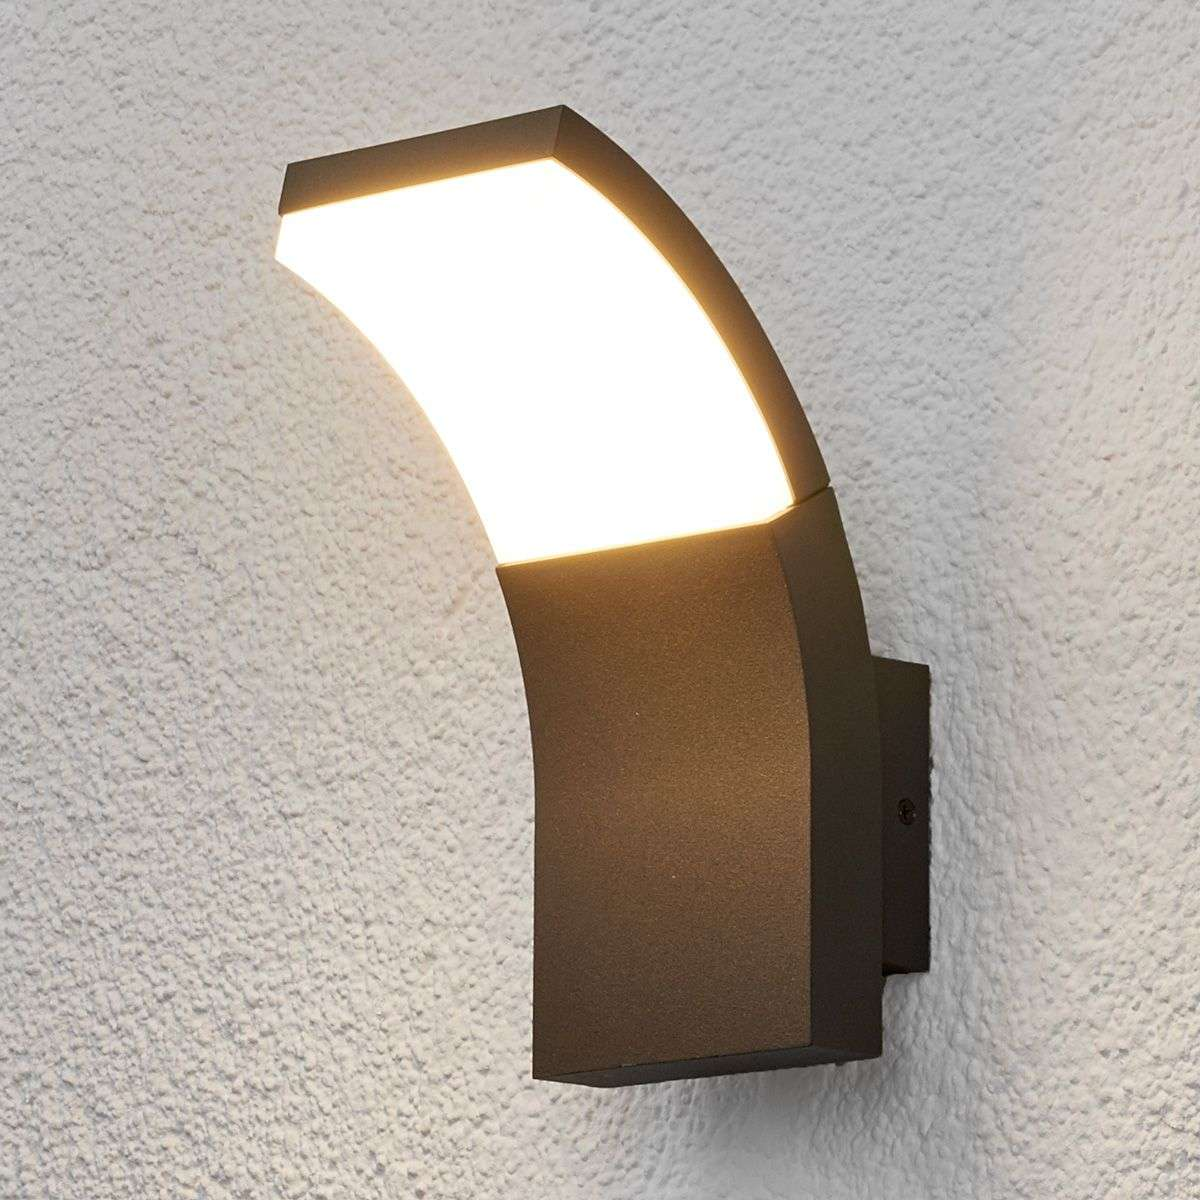 Led outdoor wall light timm lights led outdoor wall light timm mozeypictures Gallery